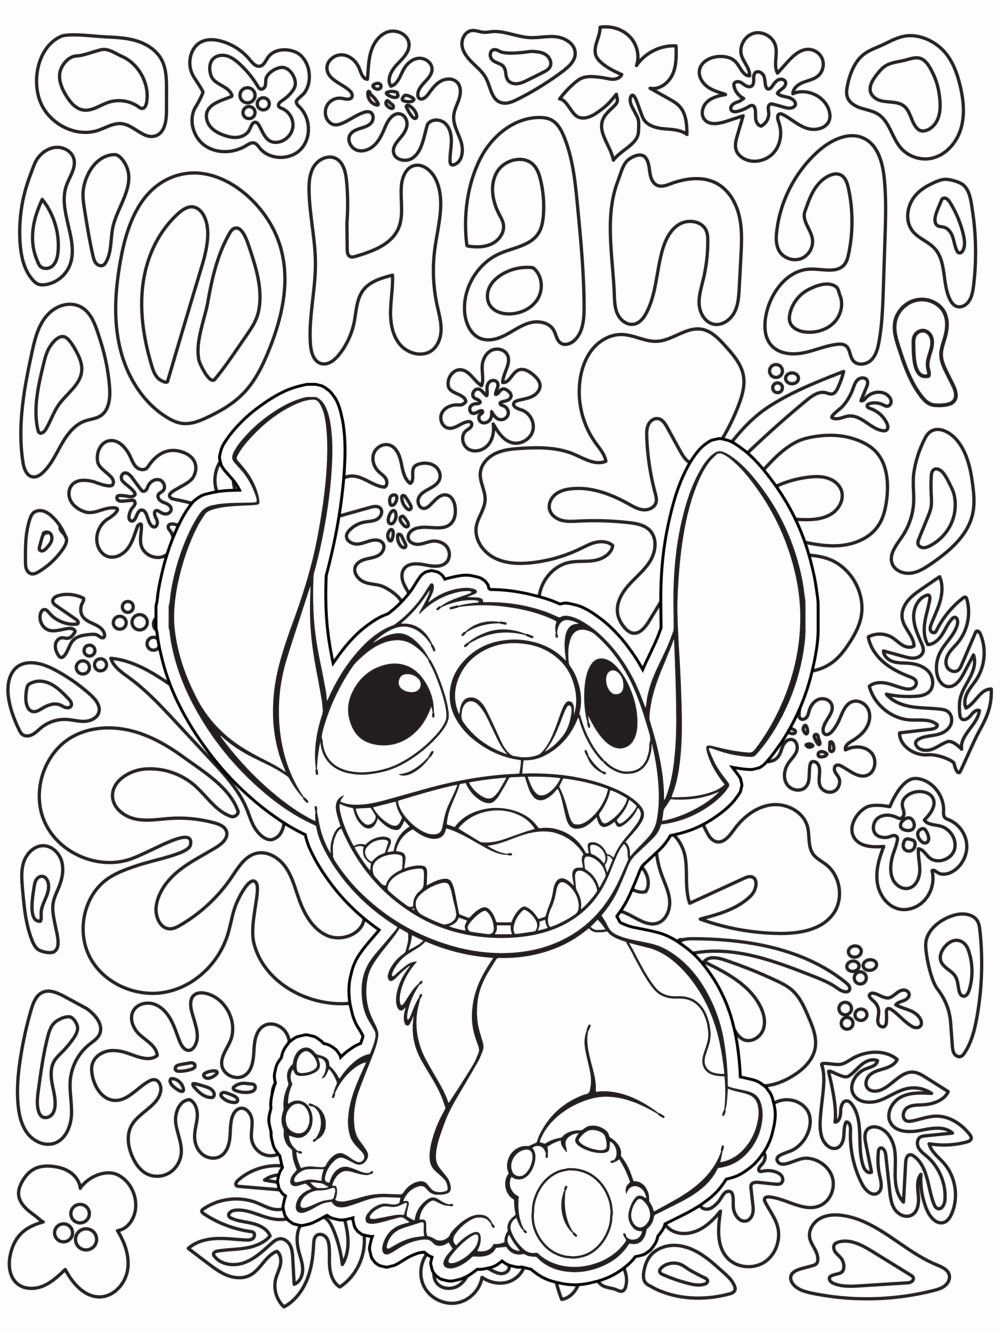 Disney Colouring Book Art Therapy Unique Print Coloring Pages Disney Stuff Free Printab Stitch Coloring Pages Free Disney Coloring Pages Disney Coloring Sheets